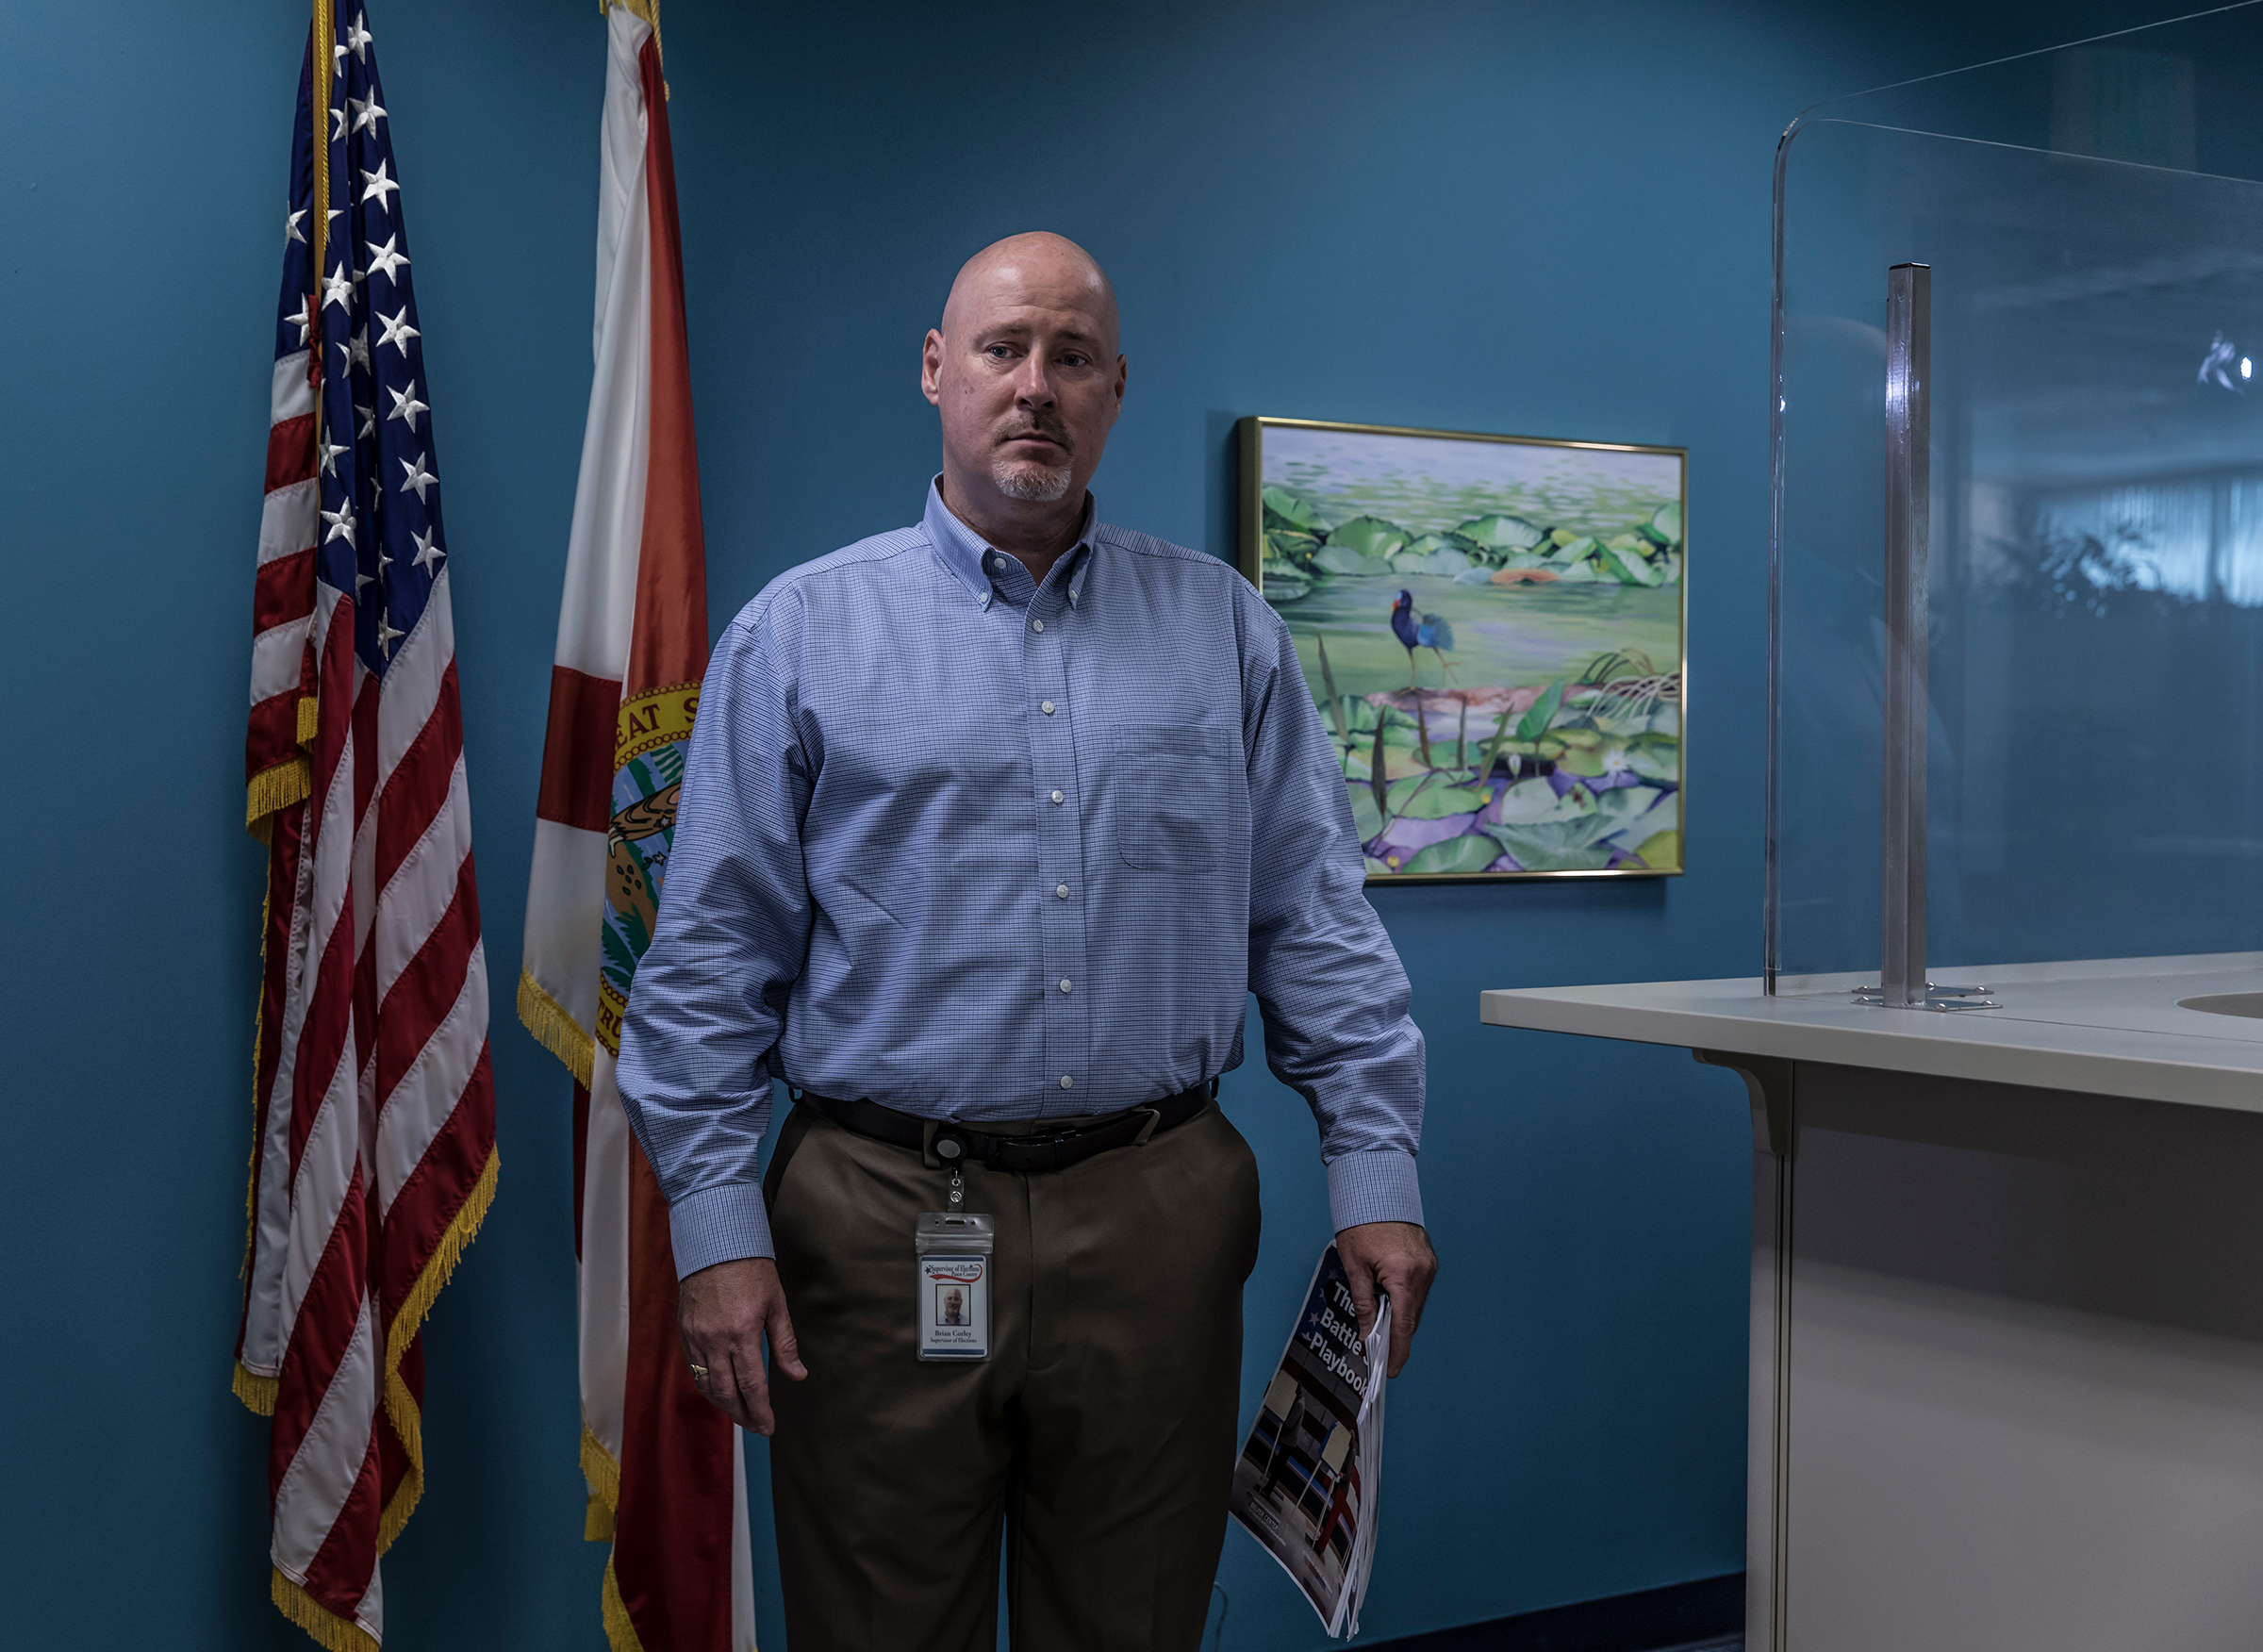 It's tough to put the genie back in the bottle.  - Brian Corley, supervisor of elections, Pasco County, Florida (Republican)